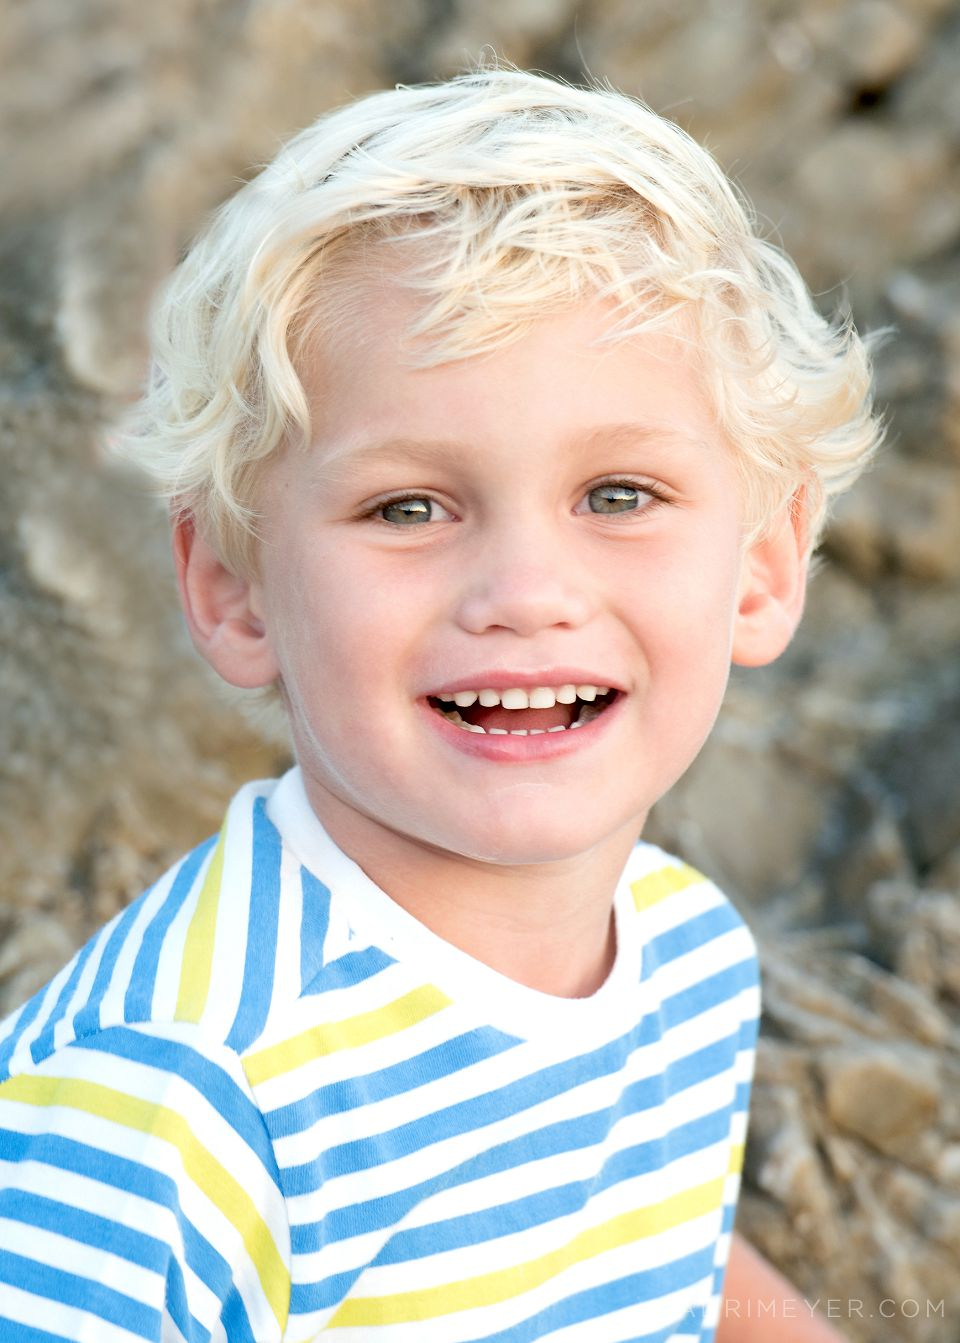 Adri Meyer Cape Town Family Photographer_0068